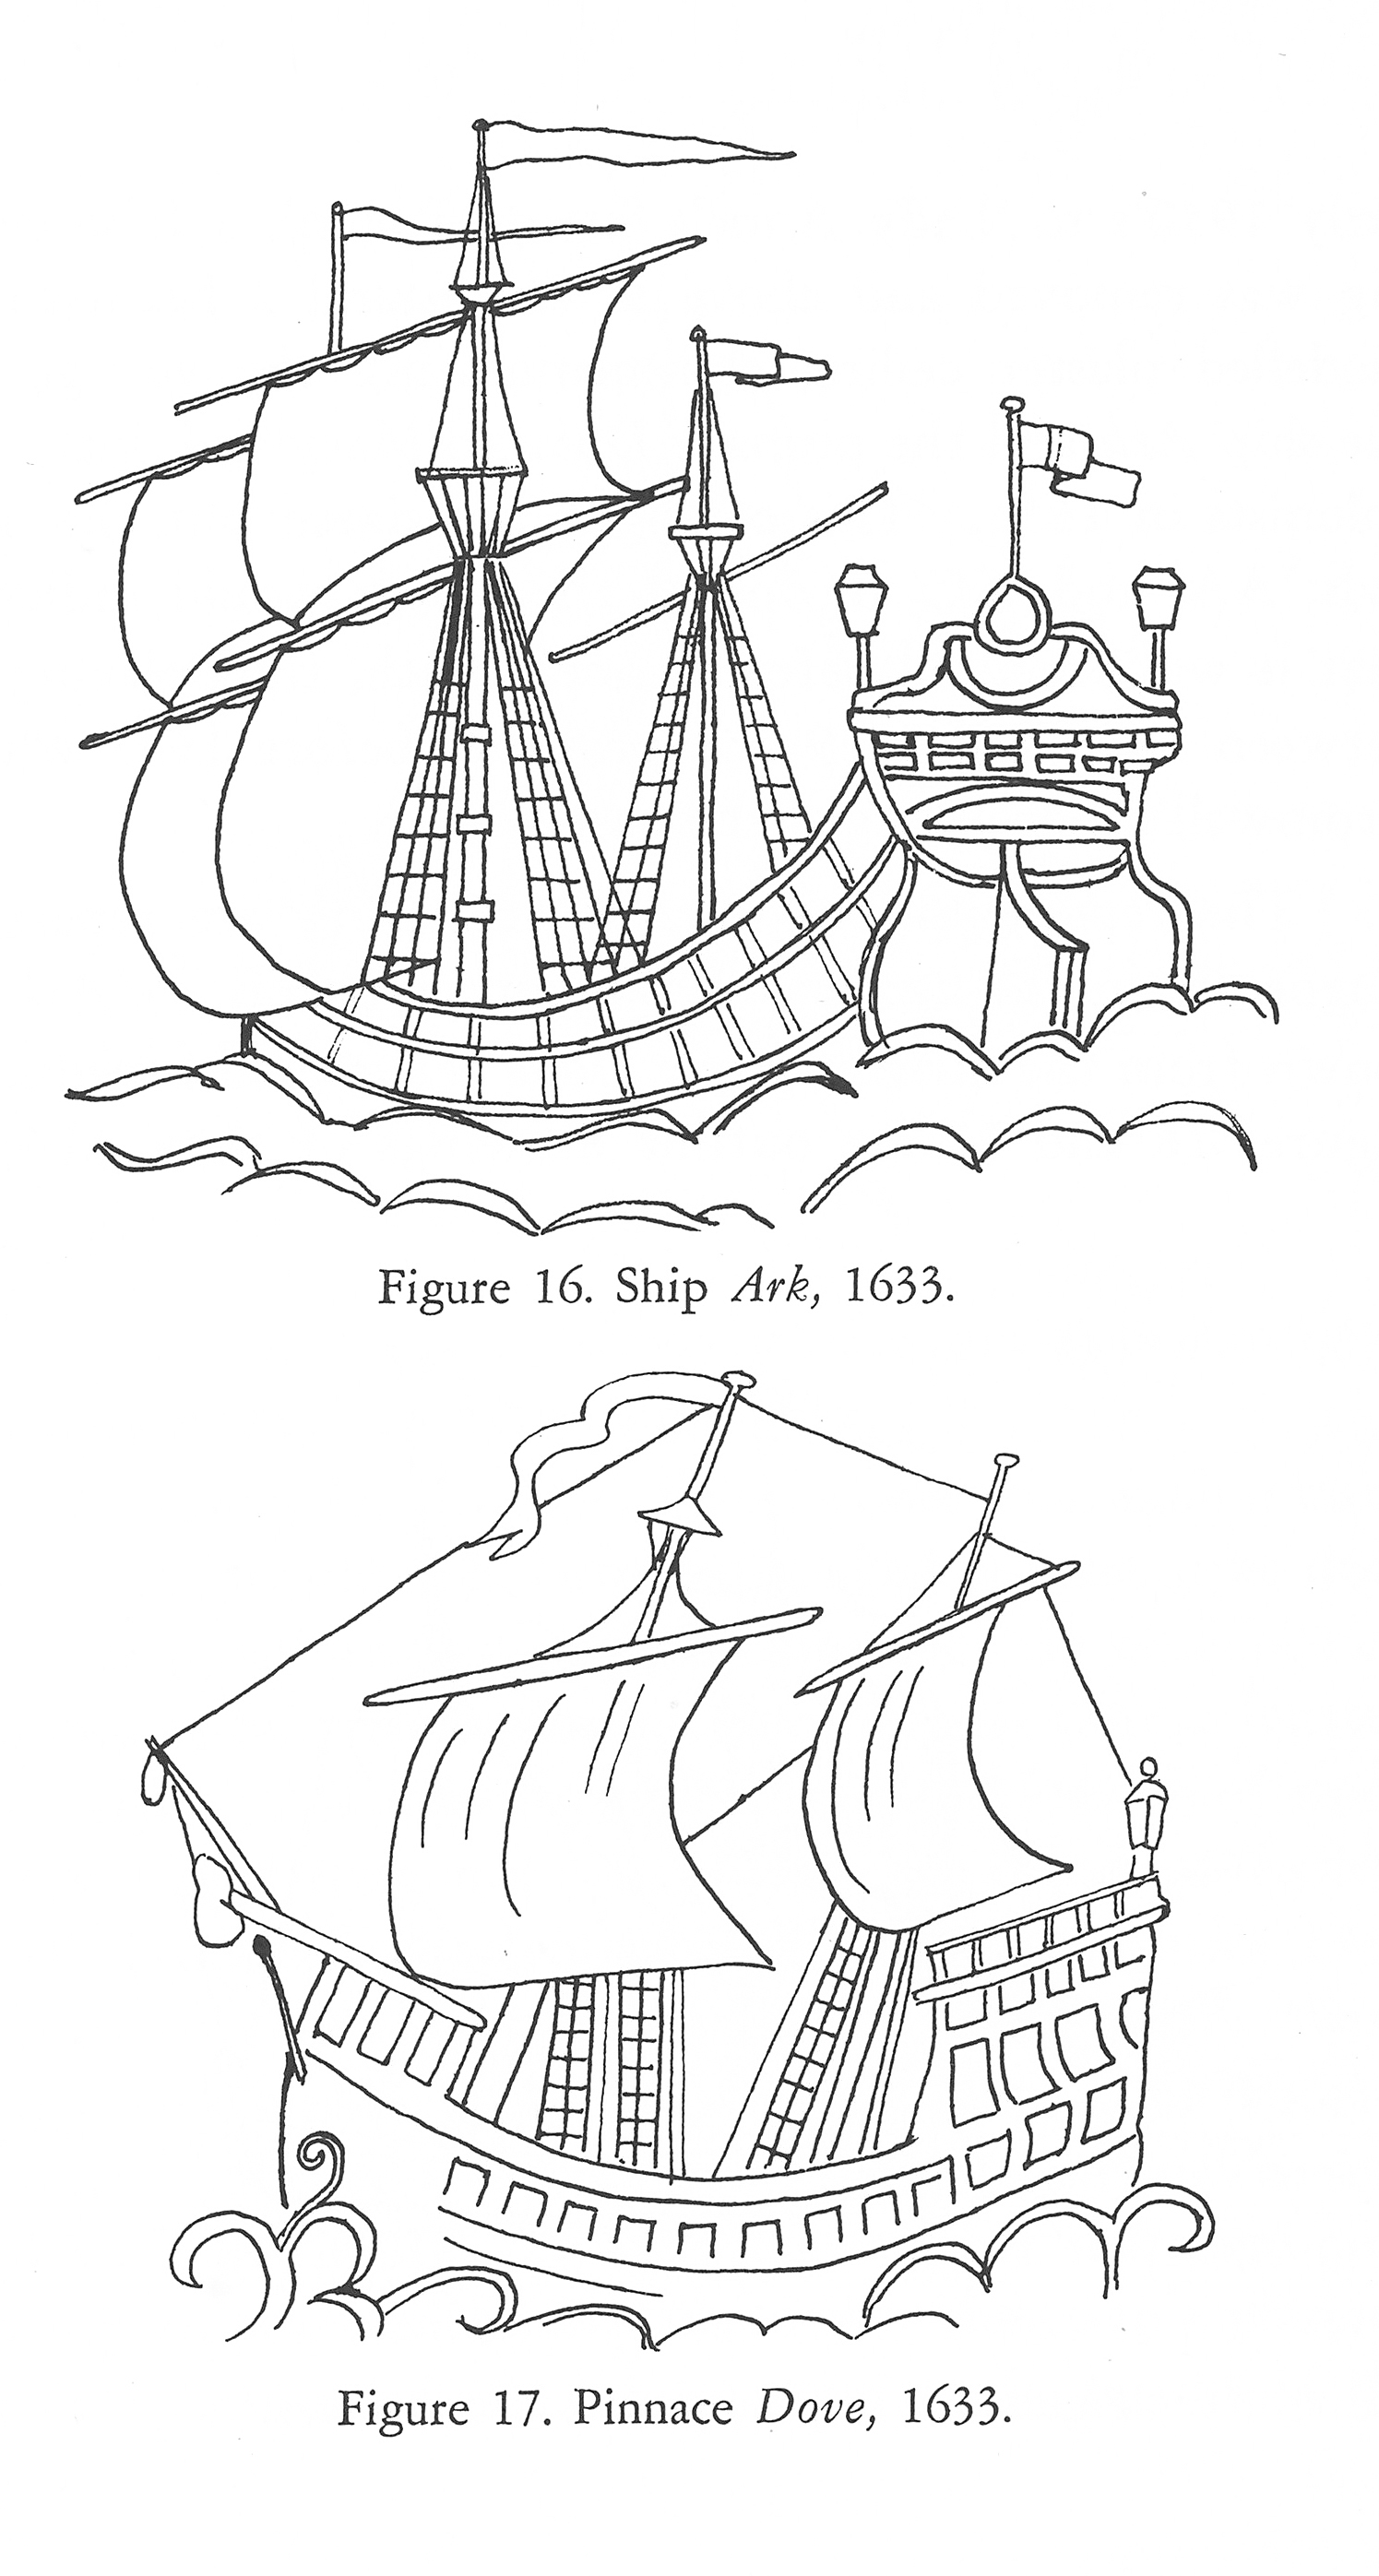 Pen-and-ink drawing of plaster ornaments that adorn Hook House, home of Anne Arundell Calvert in Tisbury, Wiltshire, England. Figures 16 and 17, Colonial Vessels: Some Seventeenth-Century Ship Designs (1962), William A. Baker. Barre Publishing.